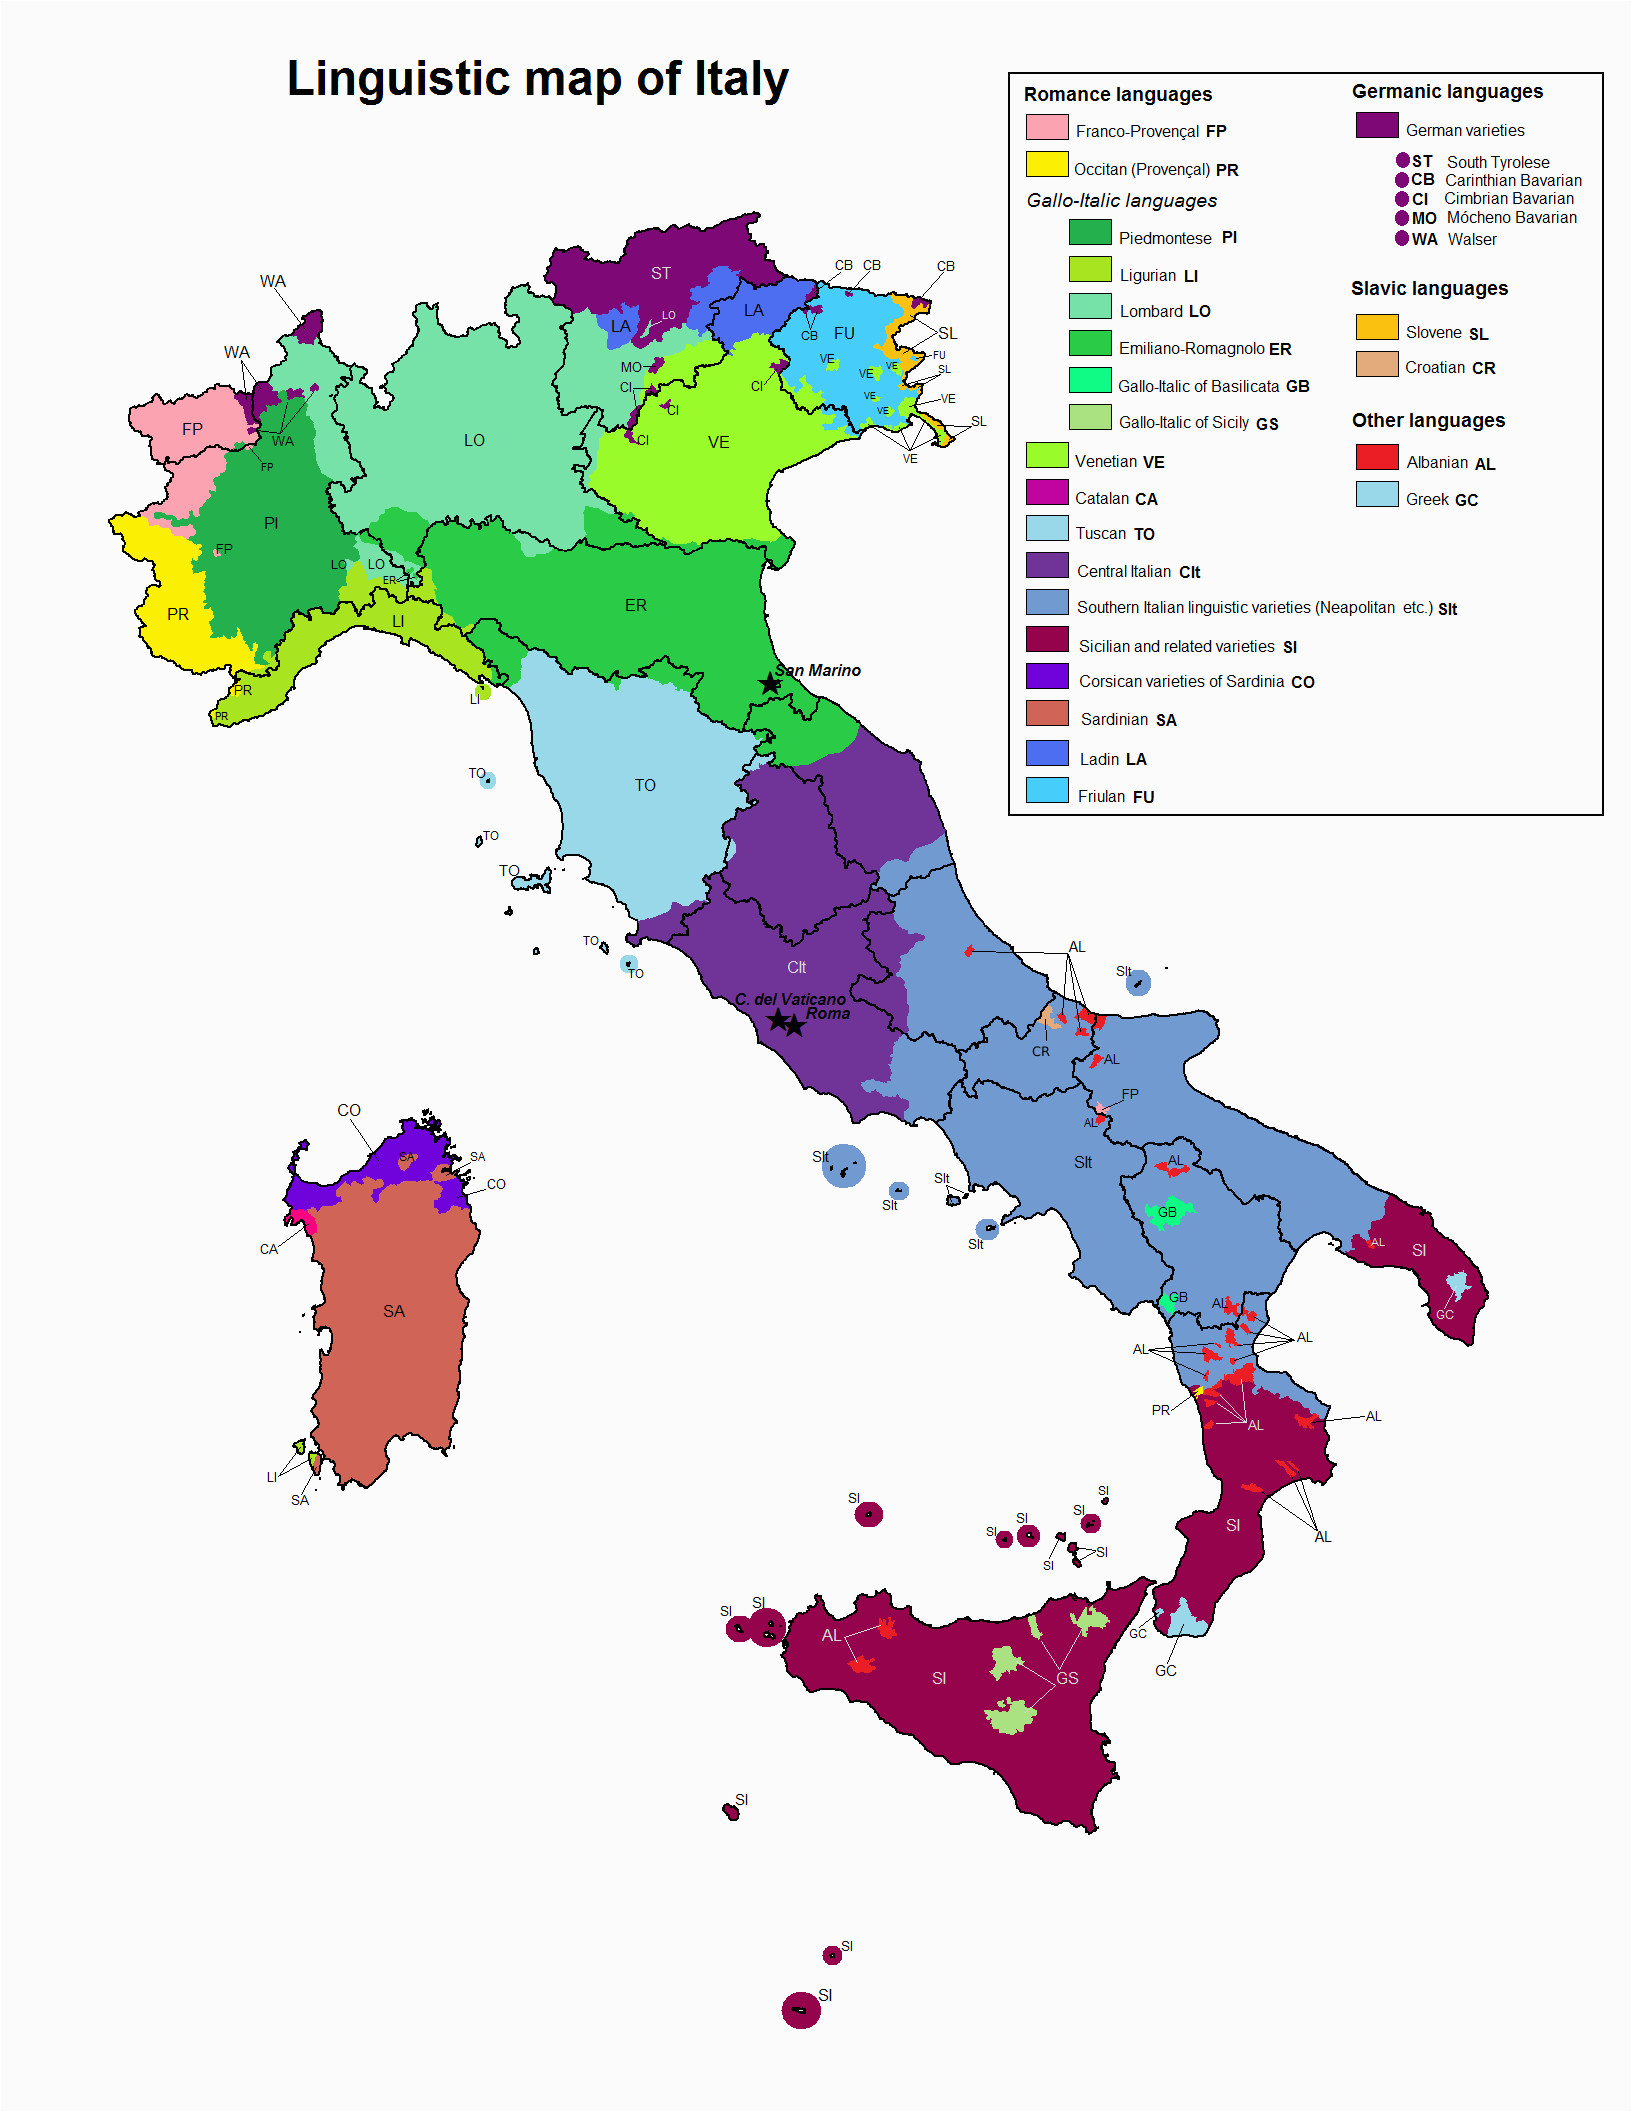 Blank Map Of Italy with Regions Linguistic Map Of Italy Maps Italy Map Map Of Italy Regions